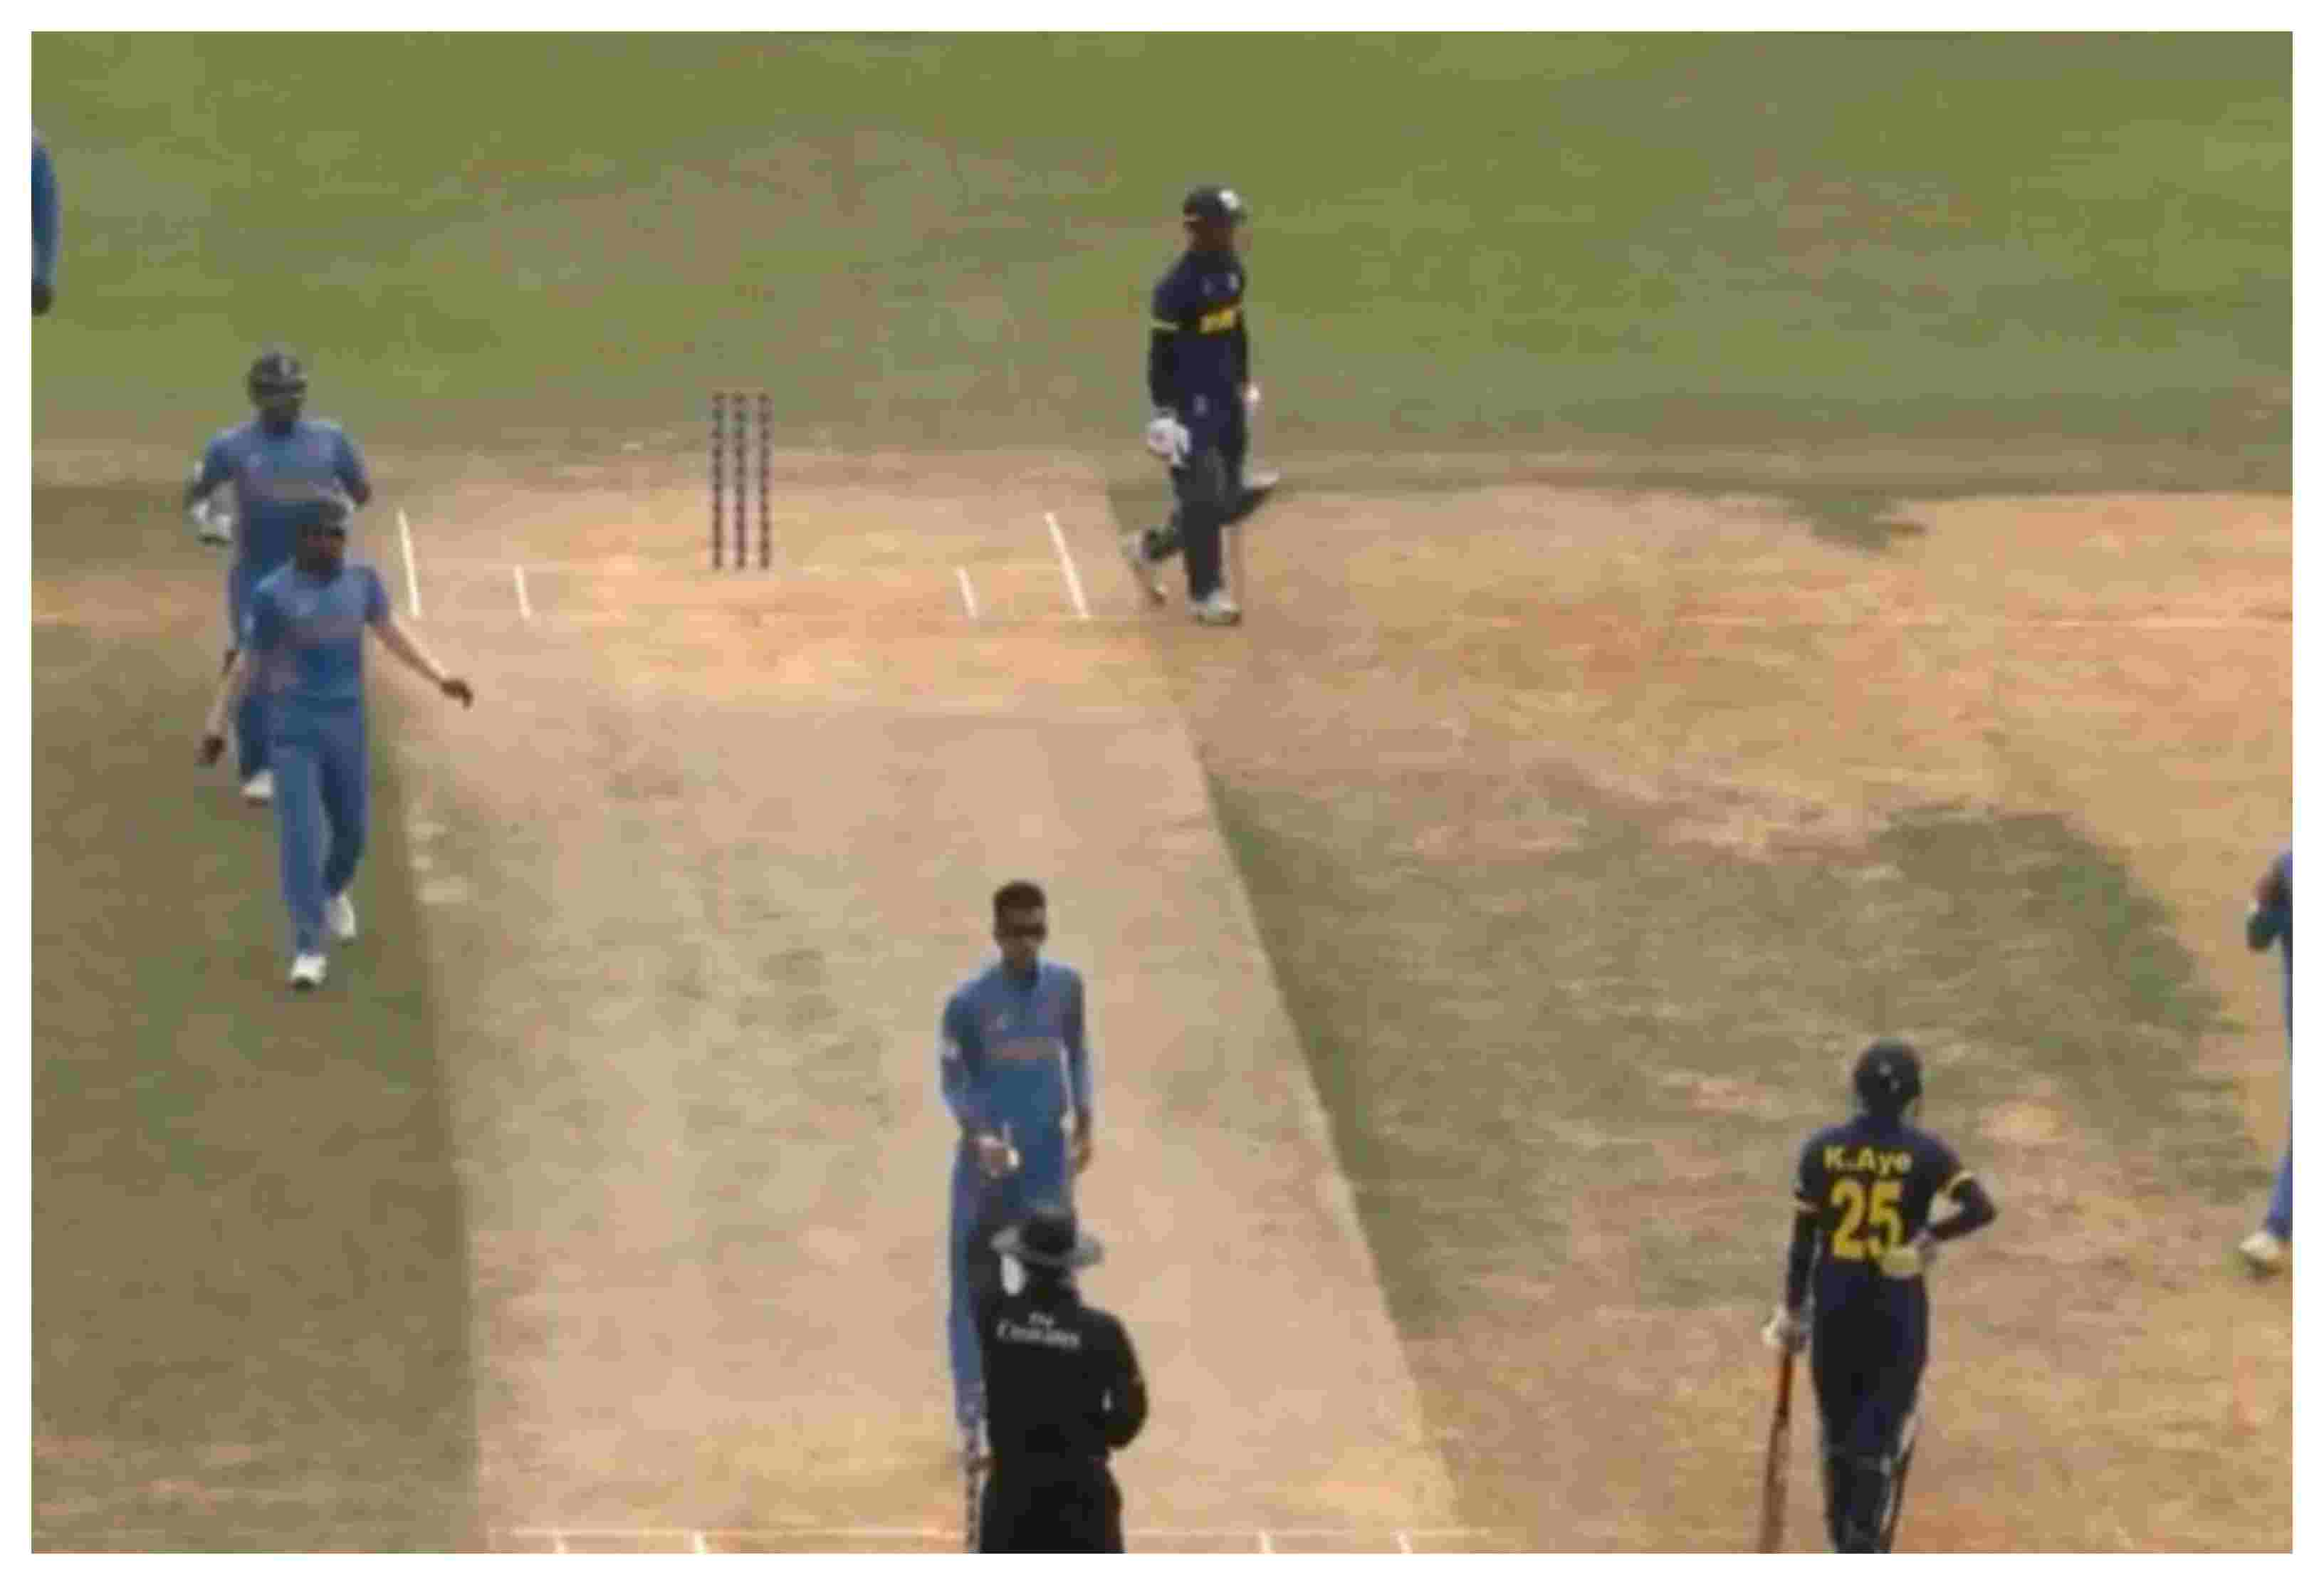 Malaysia's Pavandeep Singh picked up 5 wicket and conceded just one run | Screengrab